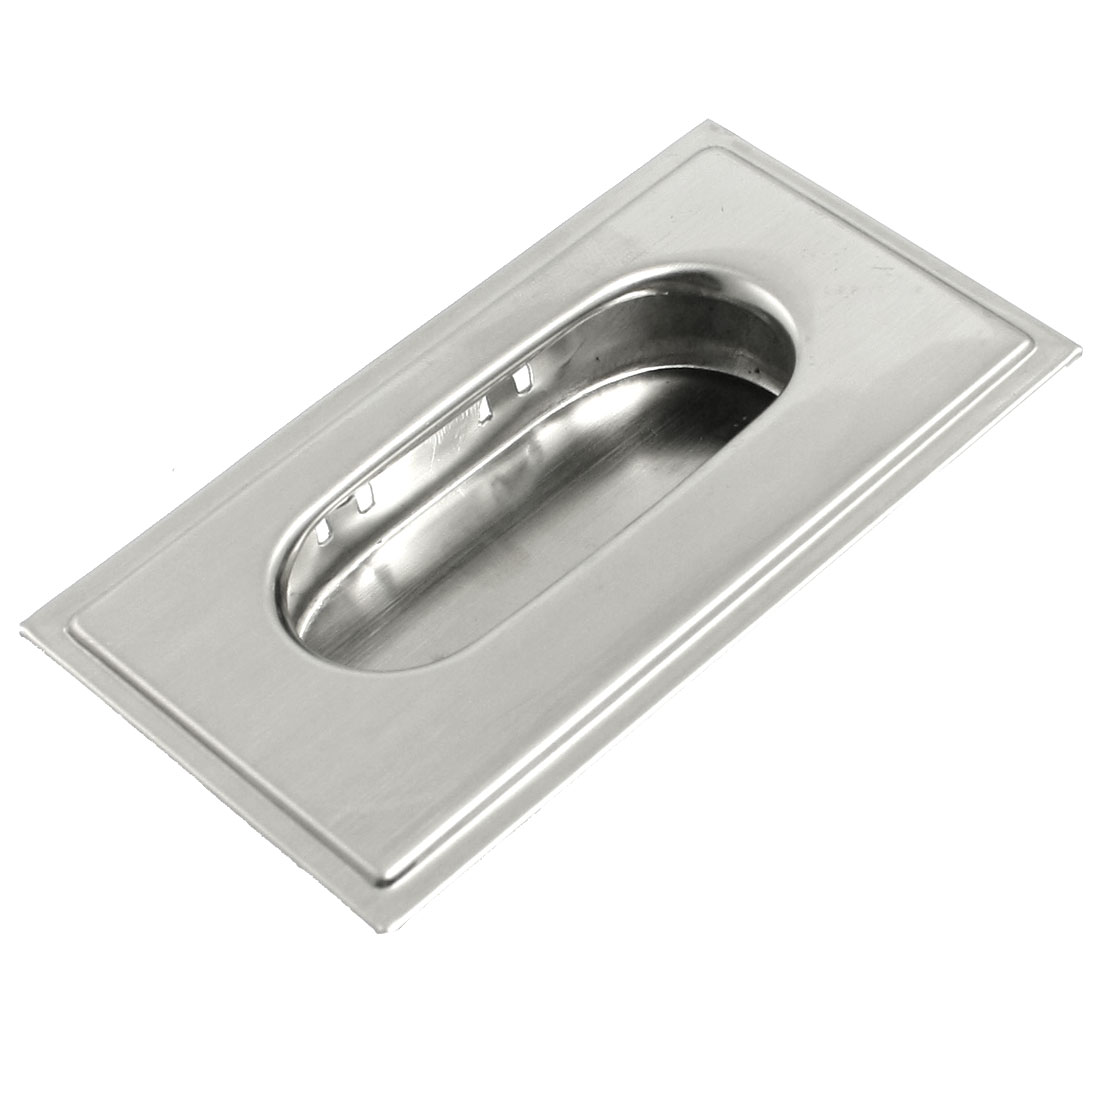 "Concealed Screw Fix Stainless Steel Flush Pull Handle 3.1"" Long"